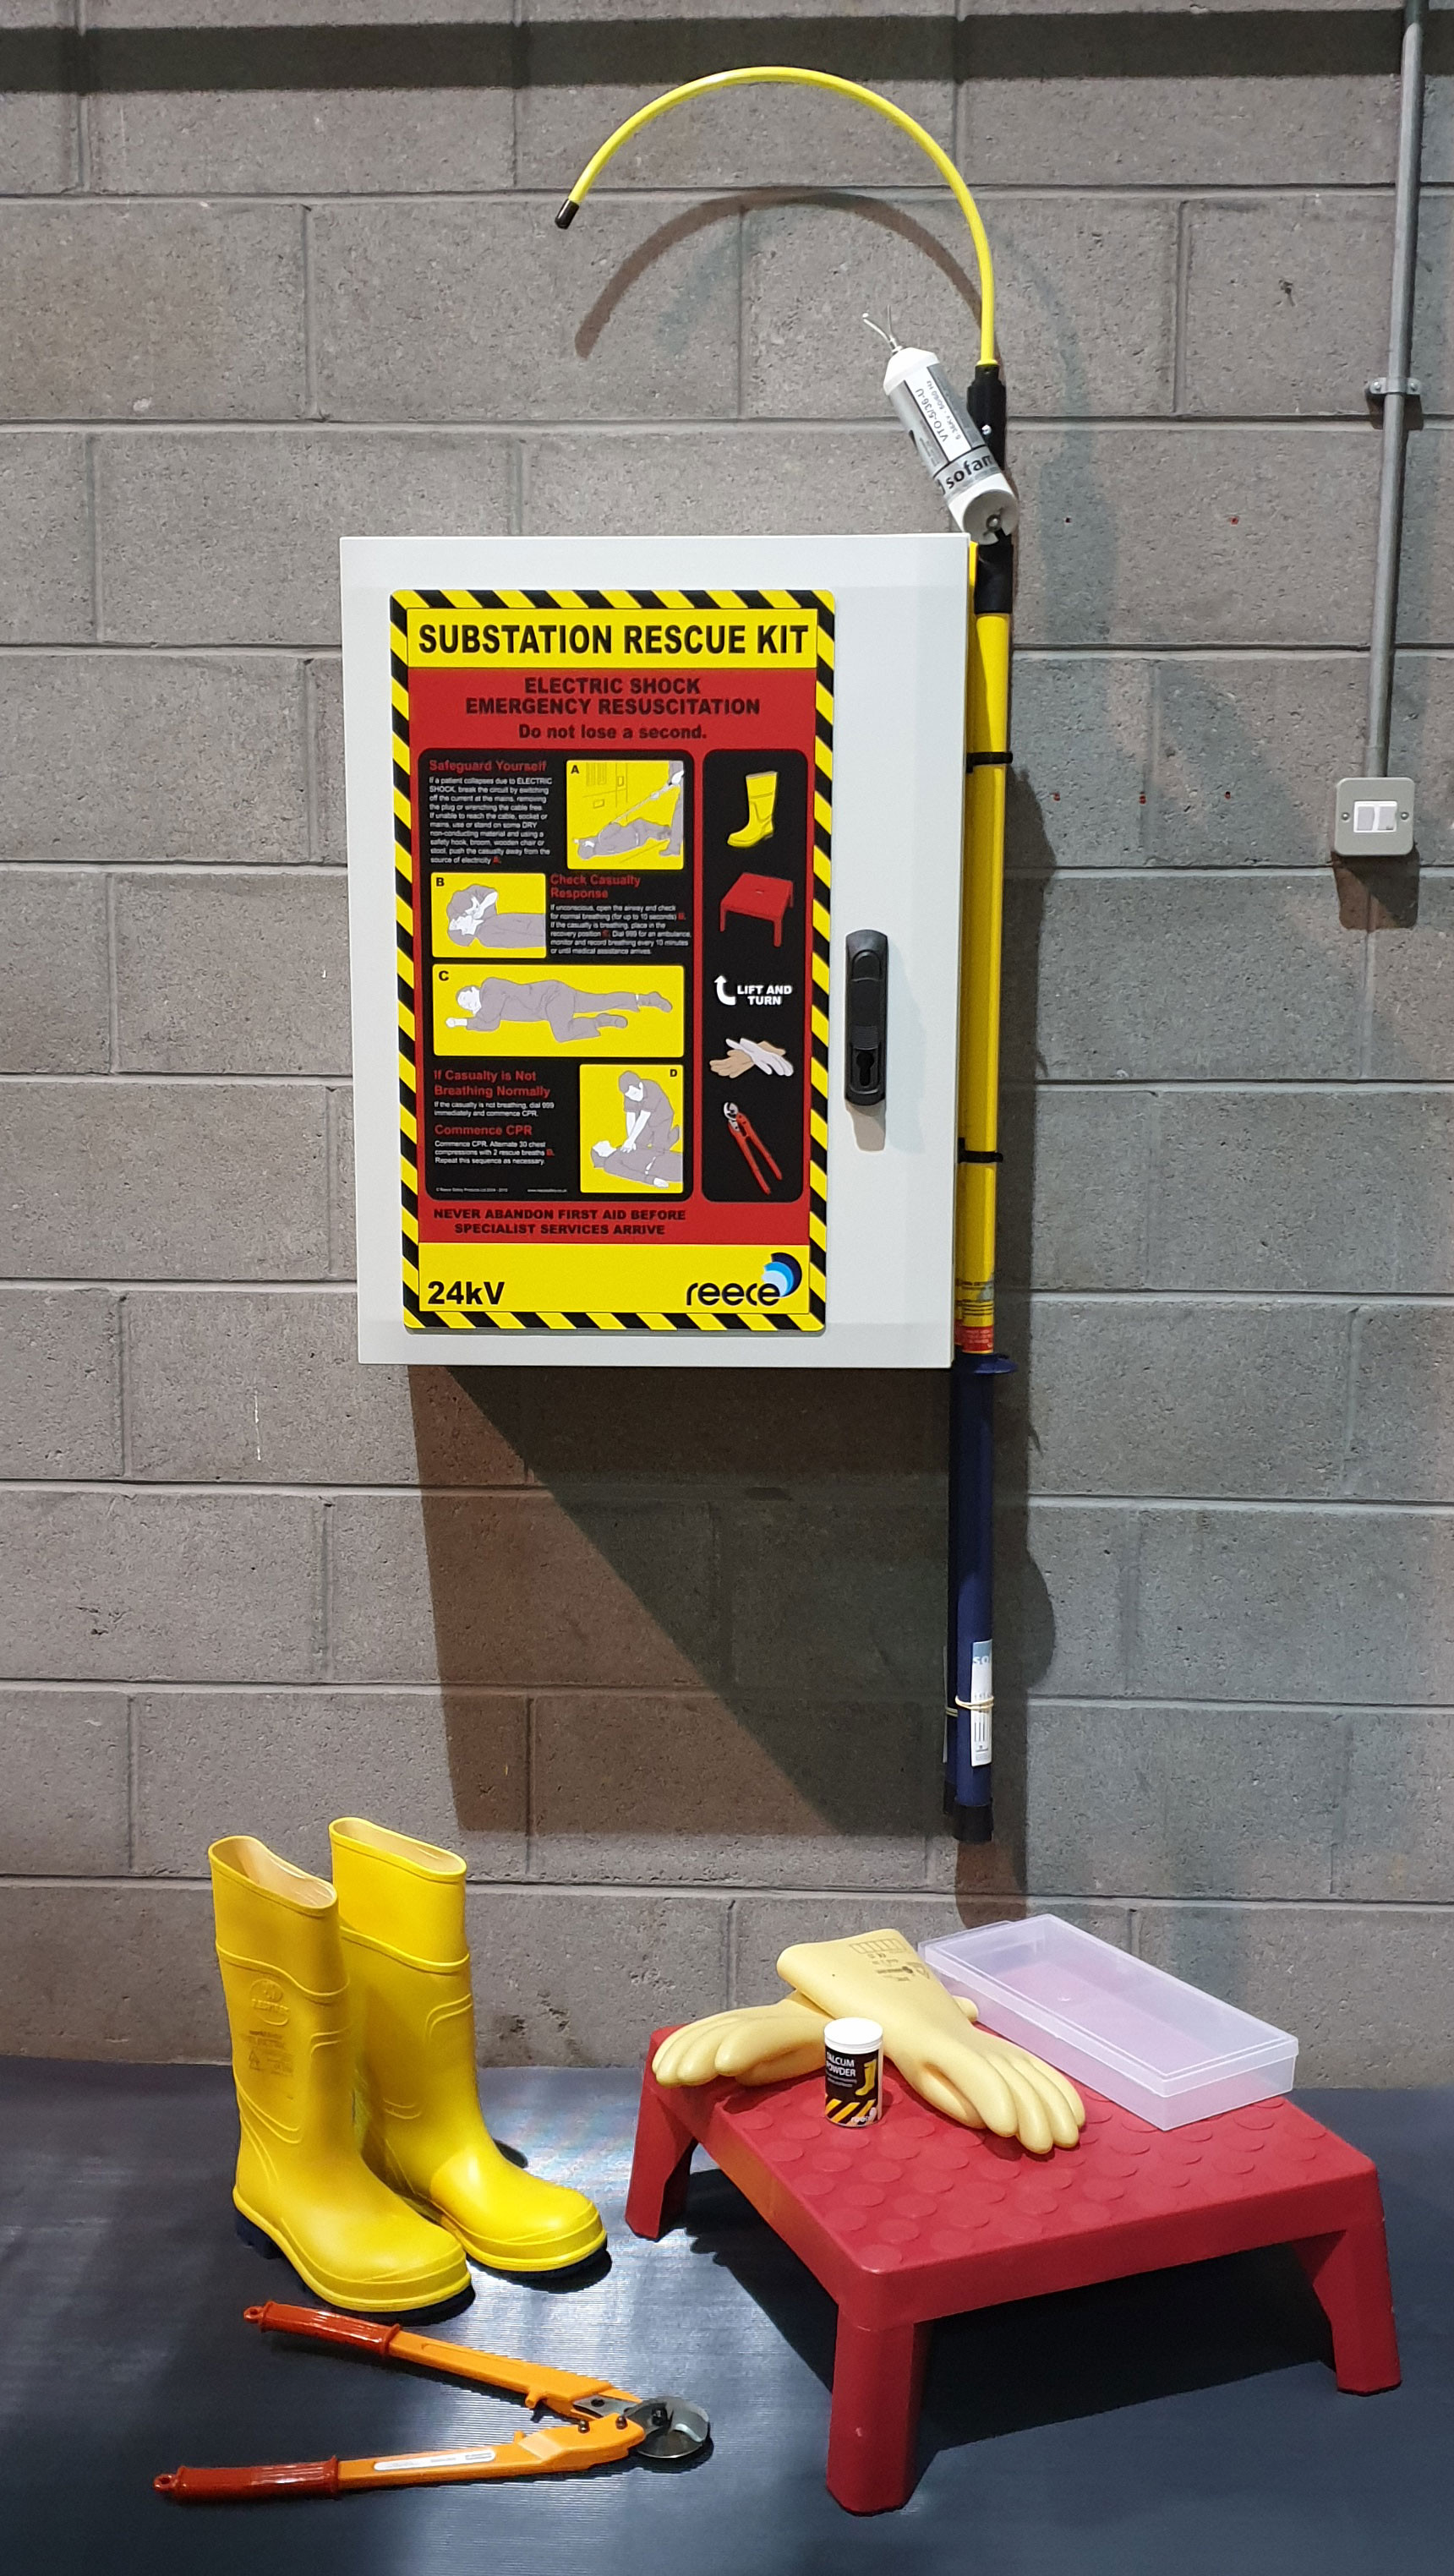 24kV Electrical Substation Rescue kit